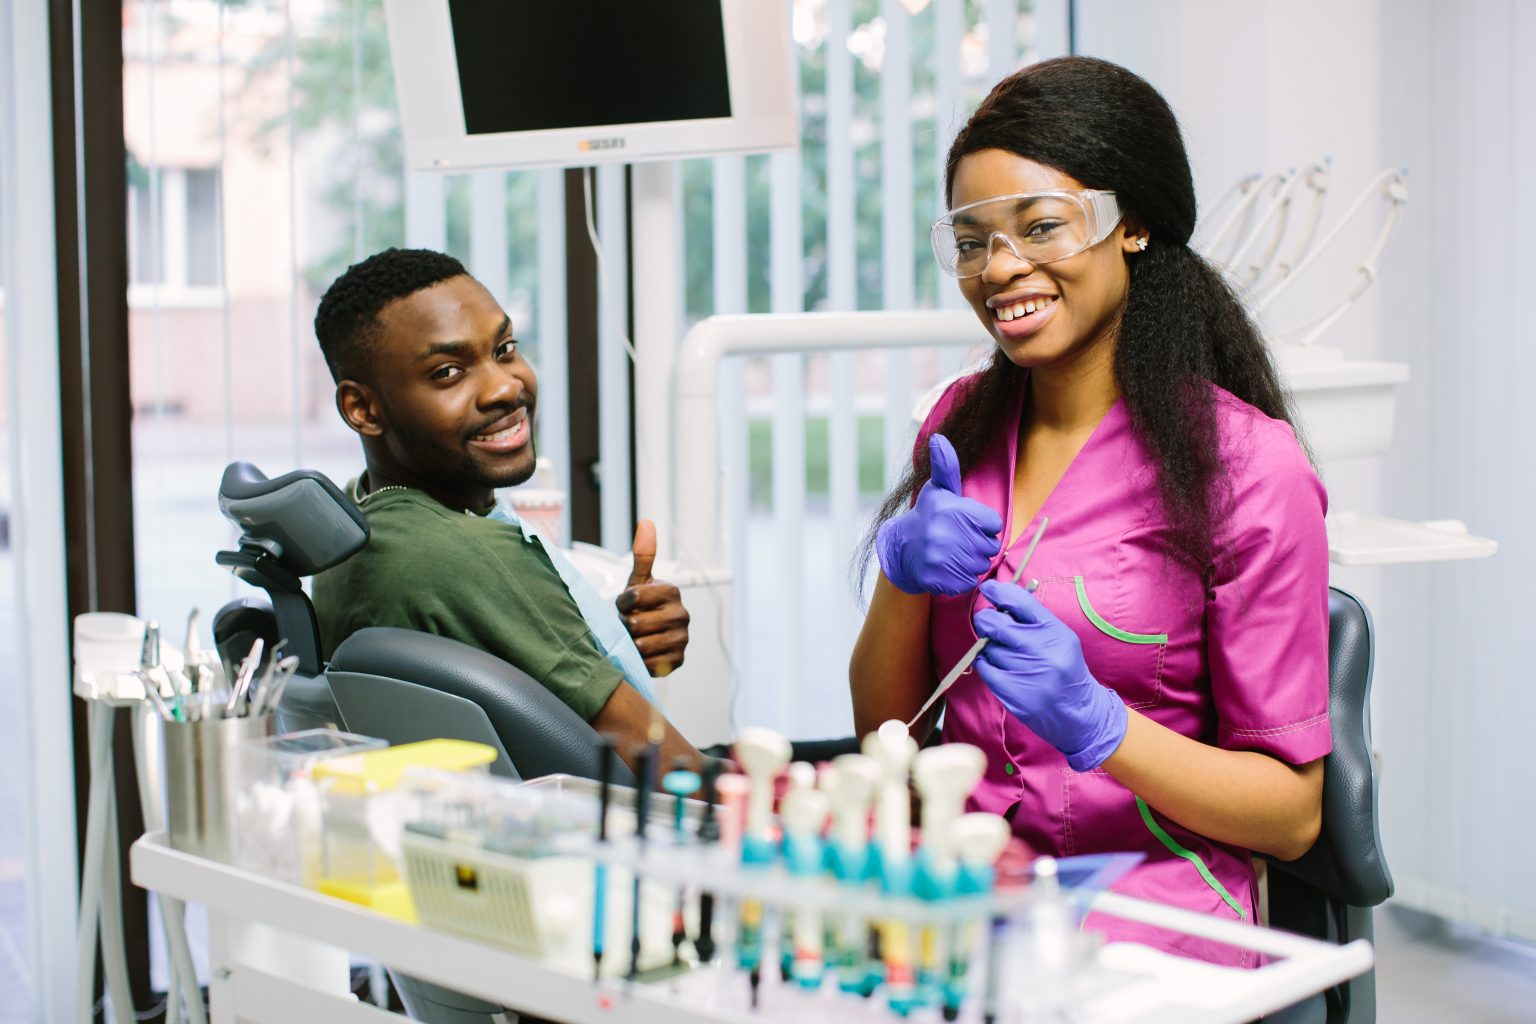 Dental Concept. Pretty African Female Dentist In Pink Suit, Protective Glasses And Blue Latex Gloves Shows Ok Sign And Smiling. Young Male African Patient Sitting In The Dental Chair And Smiling